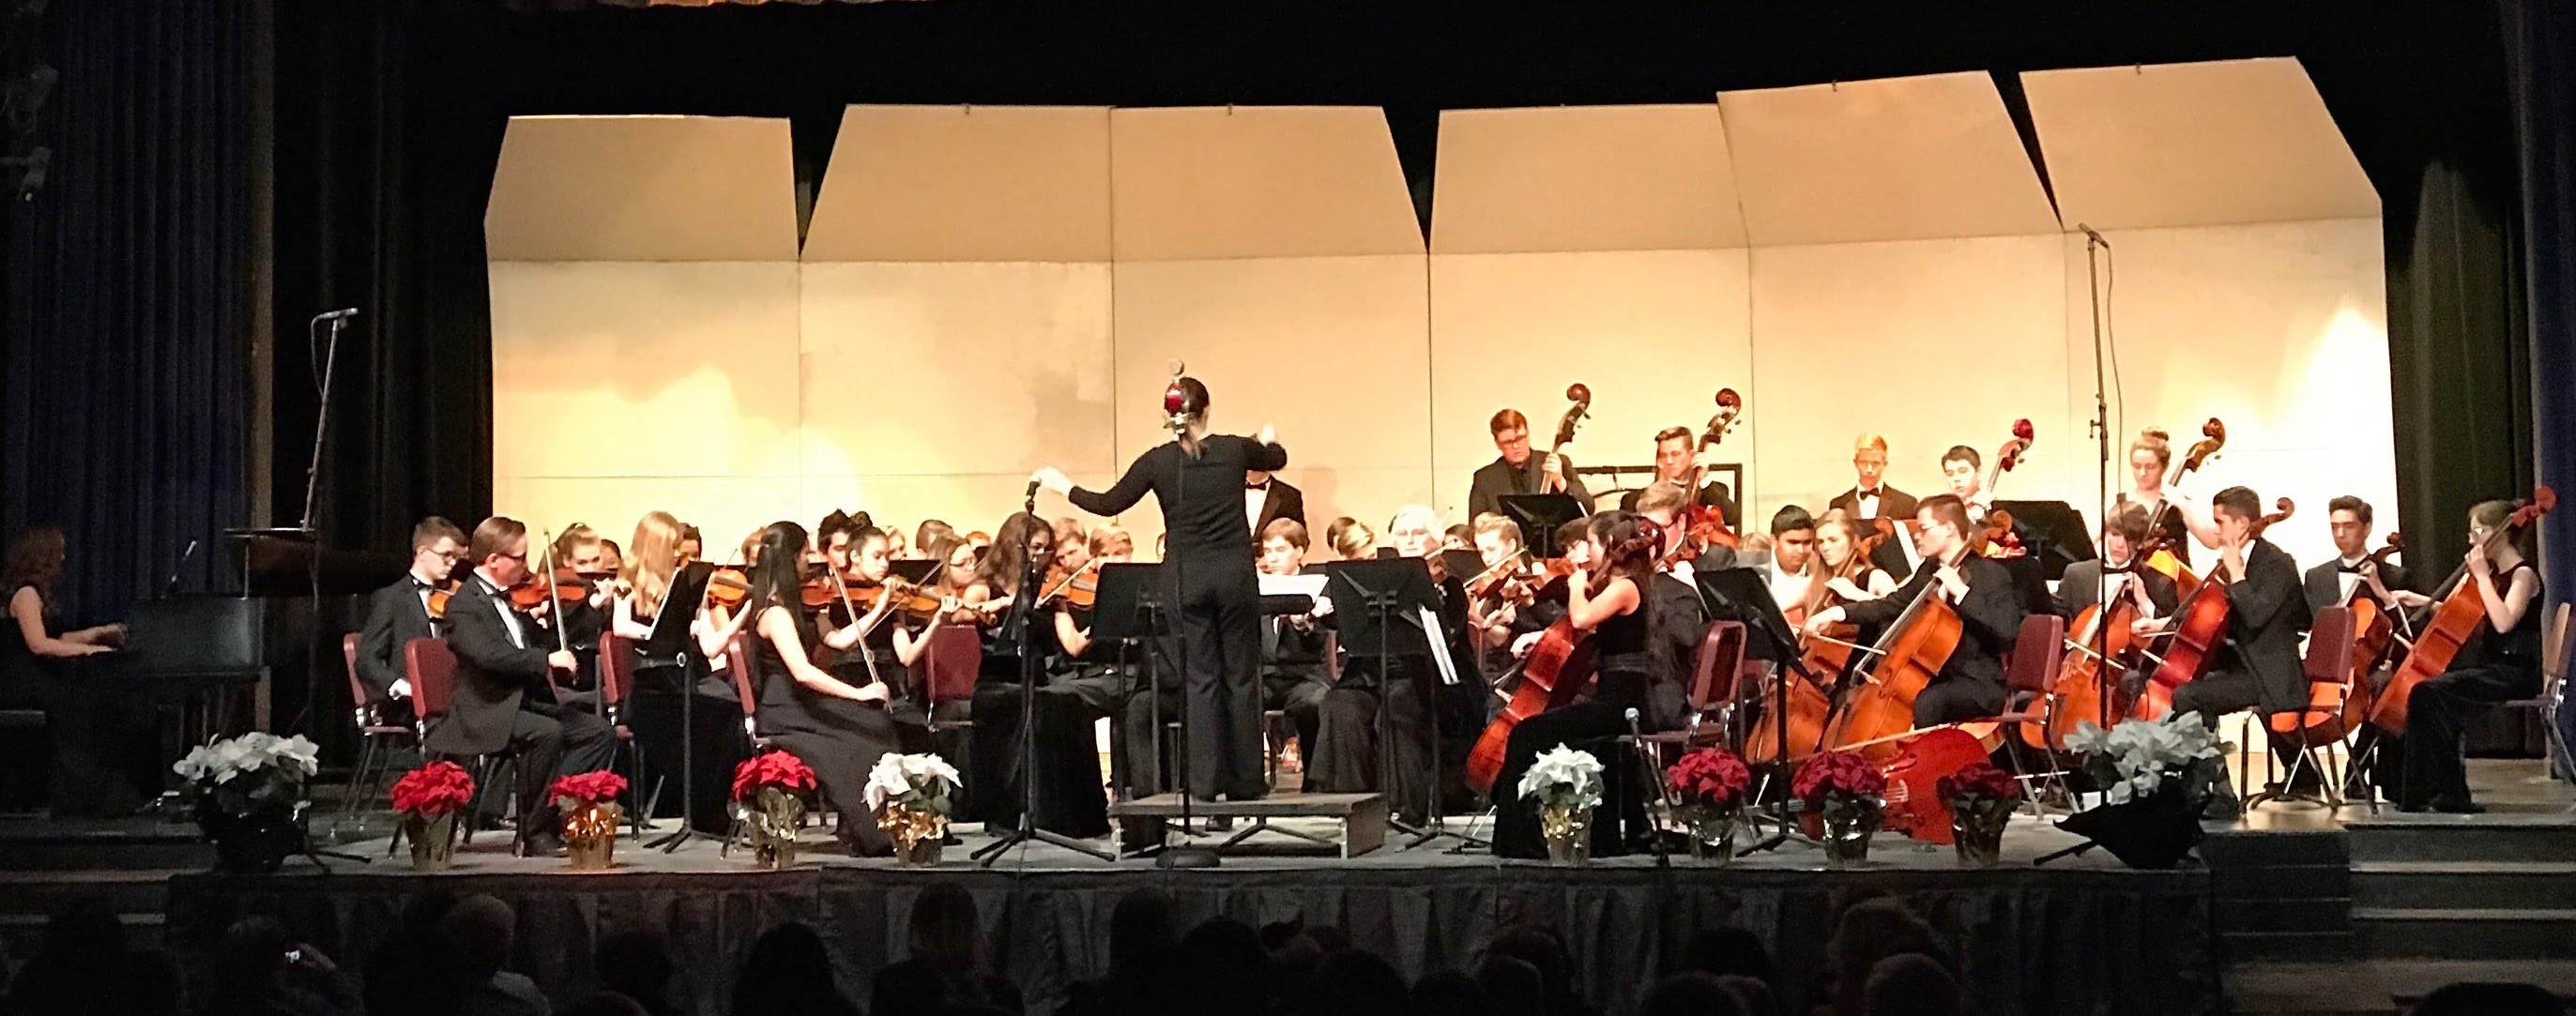 Douglas county high school orchestras for Orchestra house